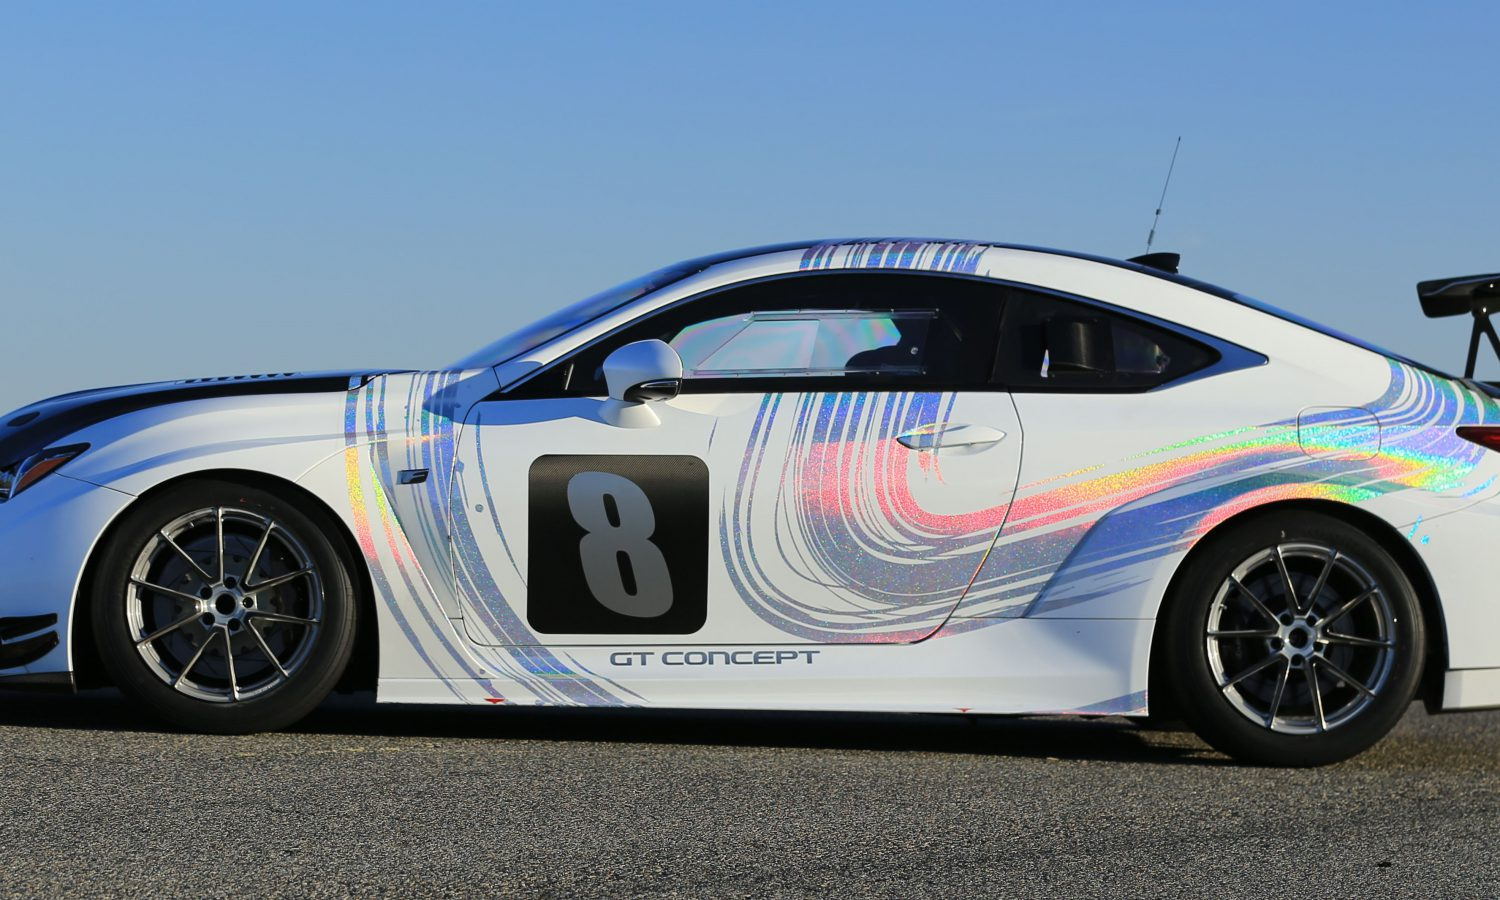 Lexus to Compete in 2015 Pikes Peak International Hill Climb with All-New RC F GT Concept